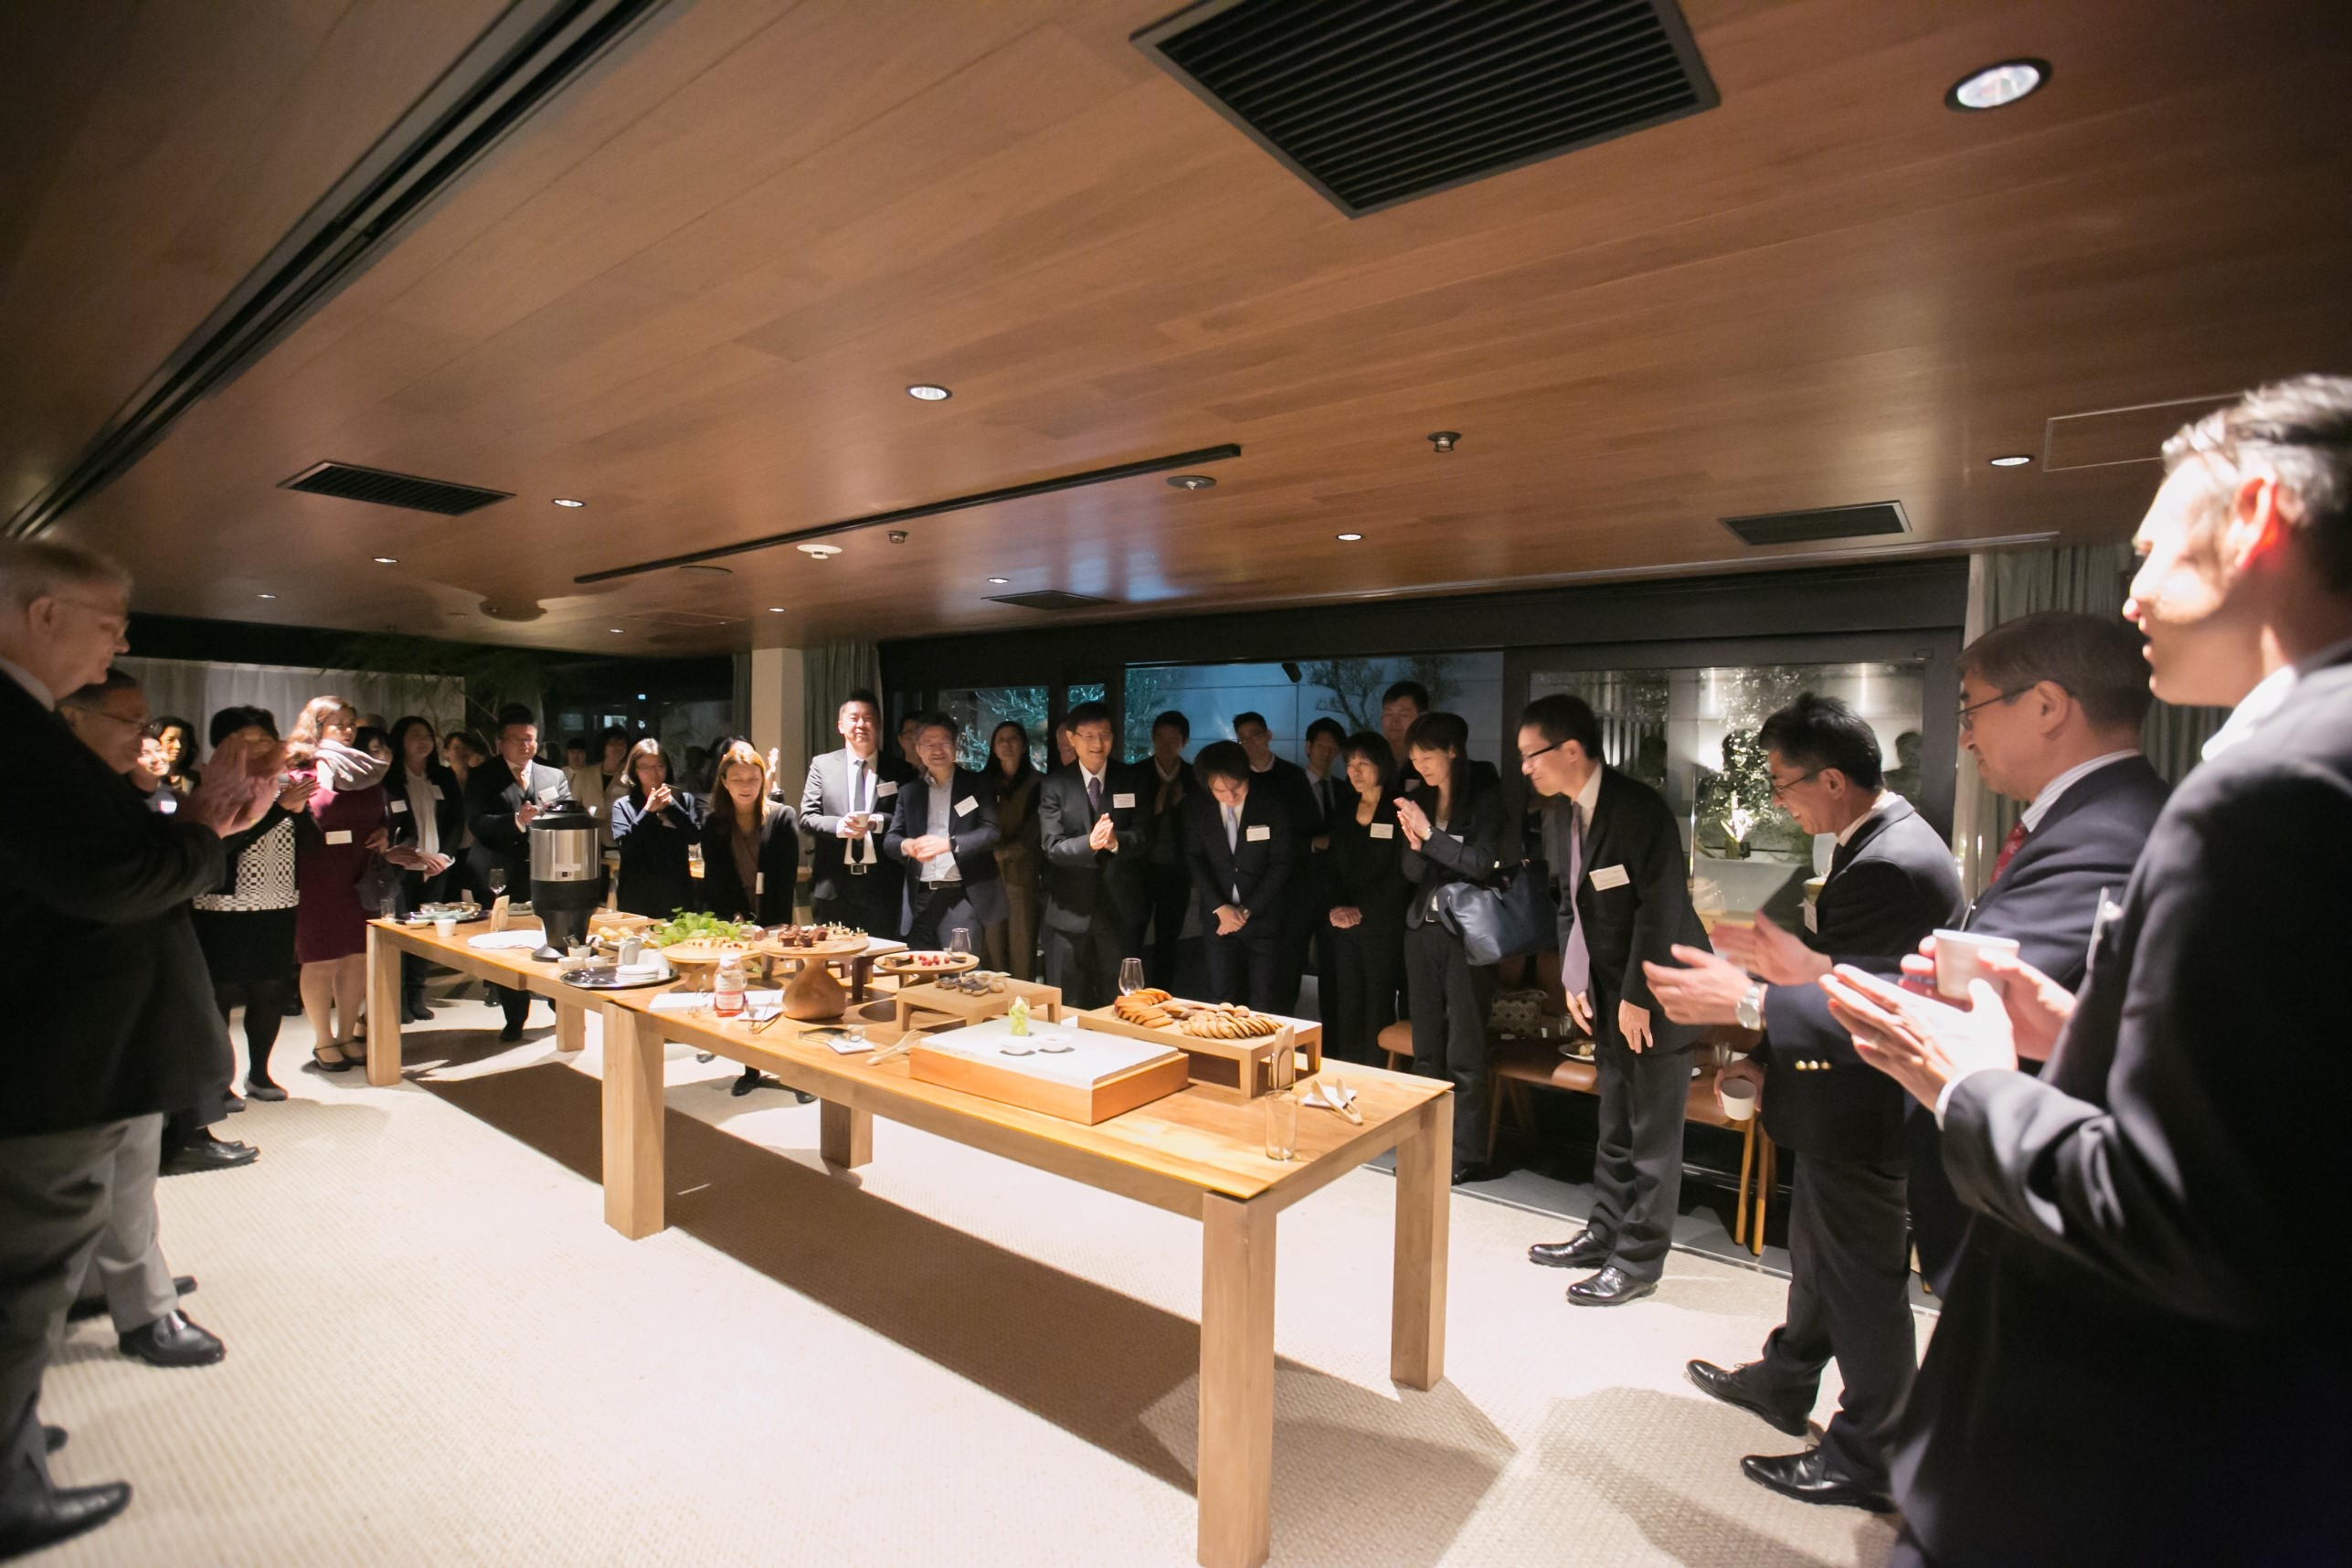 Chs tokyo hosts autumn terrace party cornell hotel society for Terrace party